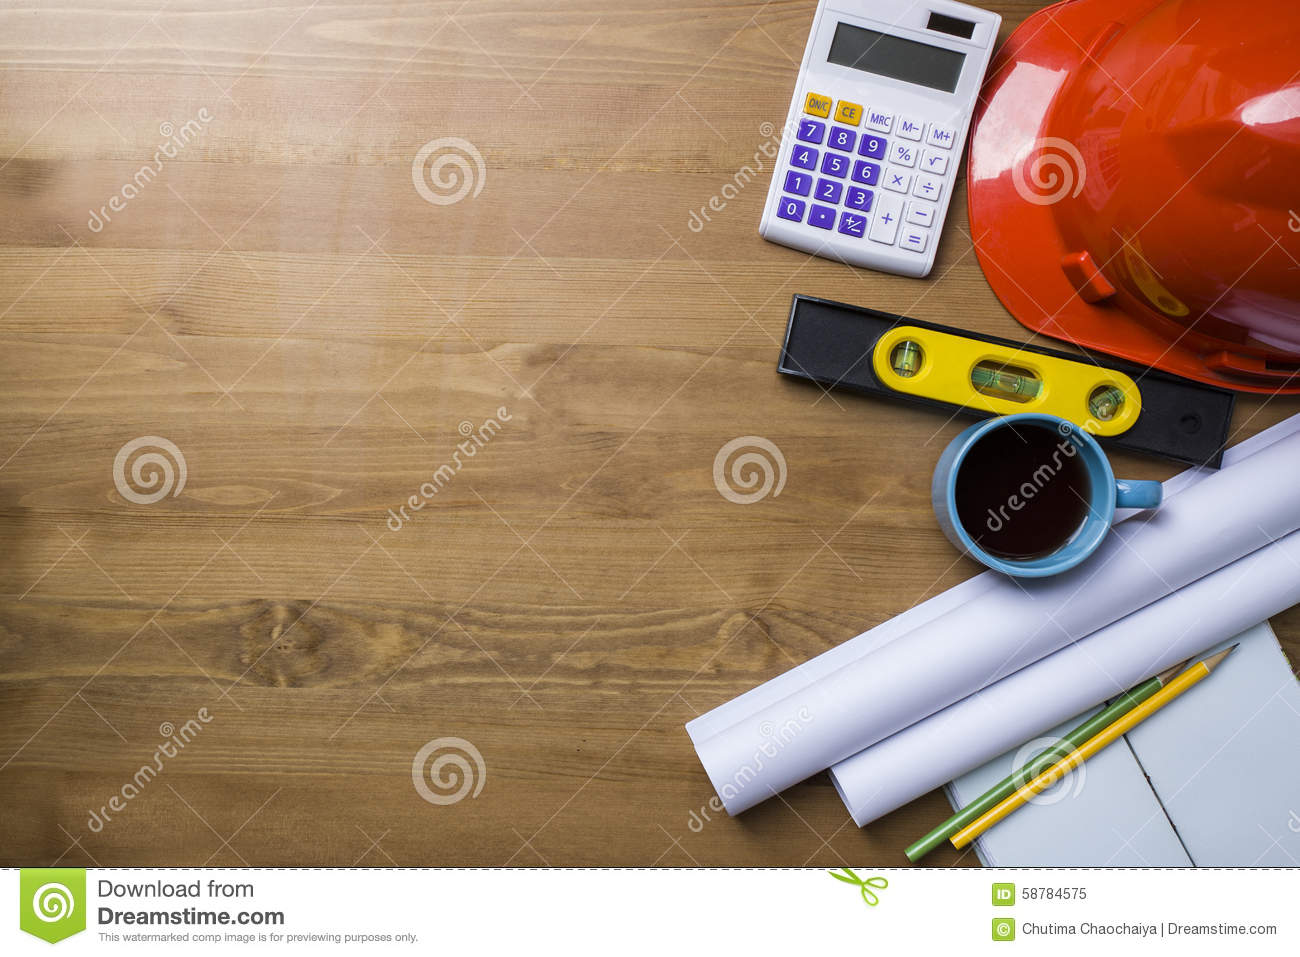 Engineer desk and project ideas concept